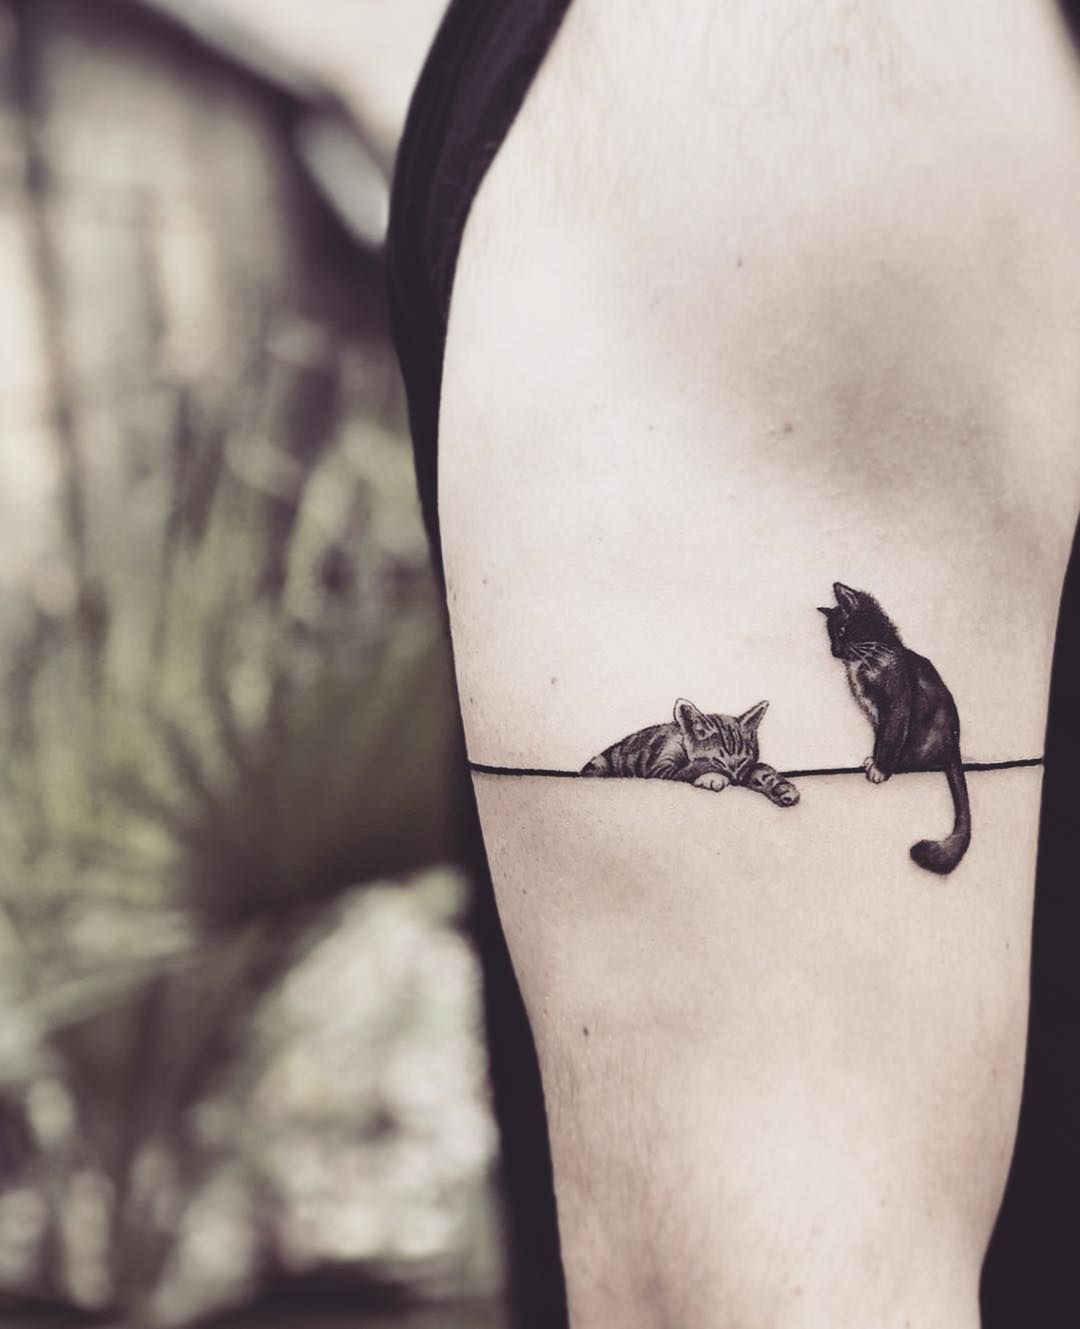 101 Tiny Animal Tattoo Designs For Men And Women Couplestattoos Animaltattoos Tattoos Tattoosfo Small Animal Tattoos Cute Animal Tattoos Cat Tattoo Designs